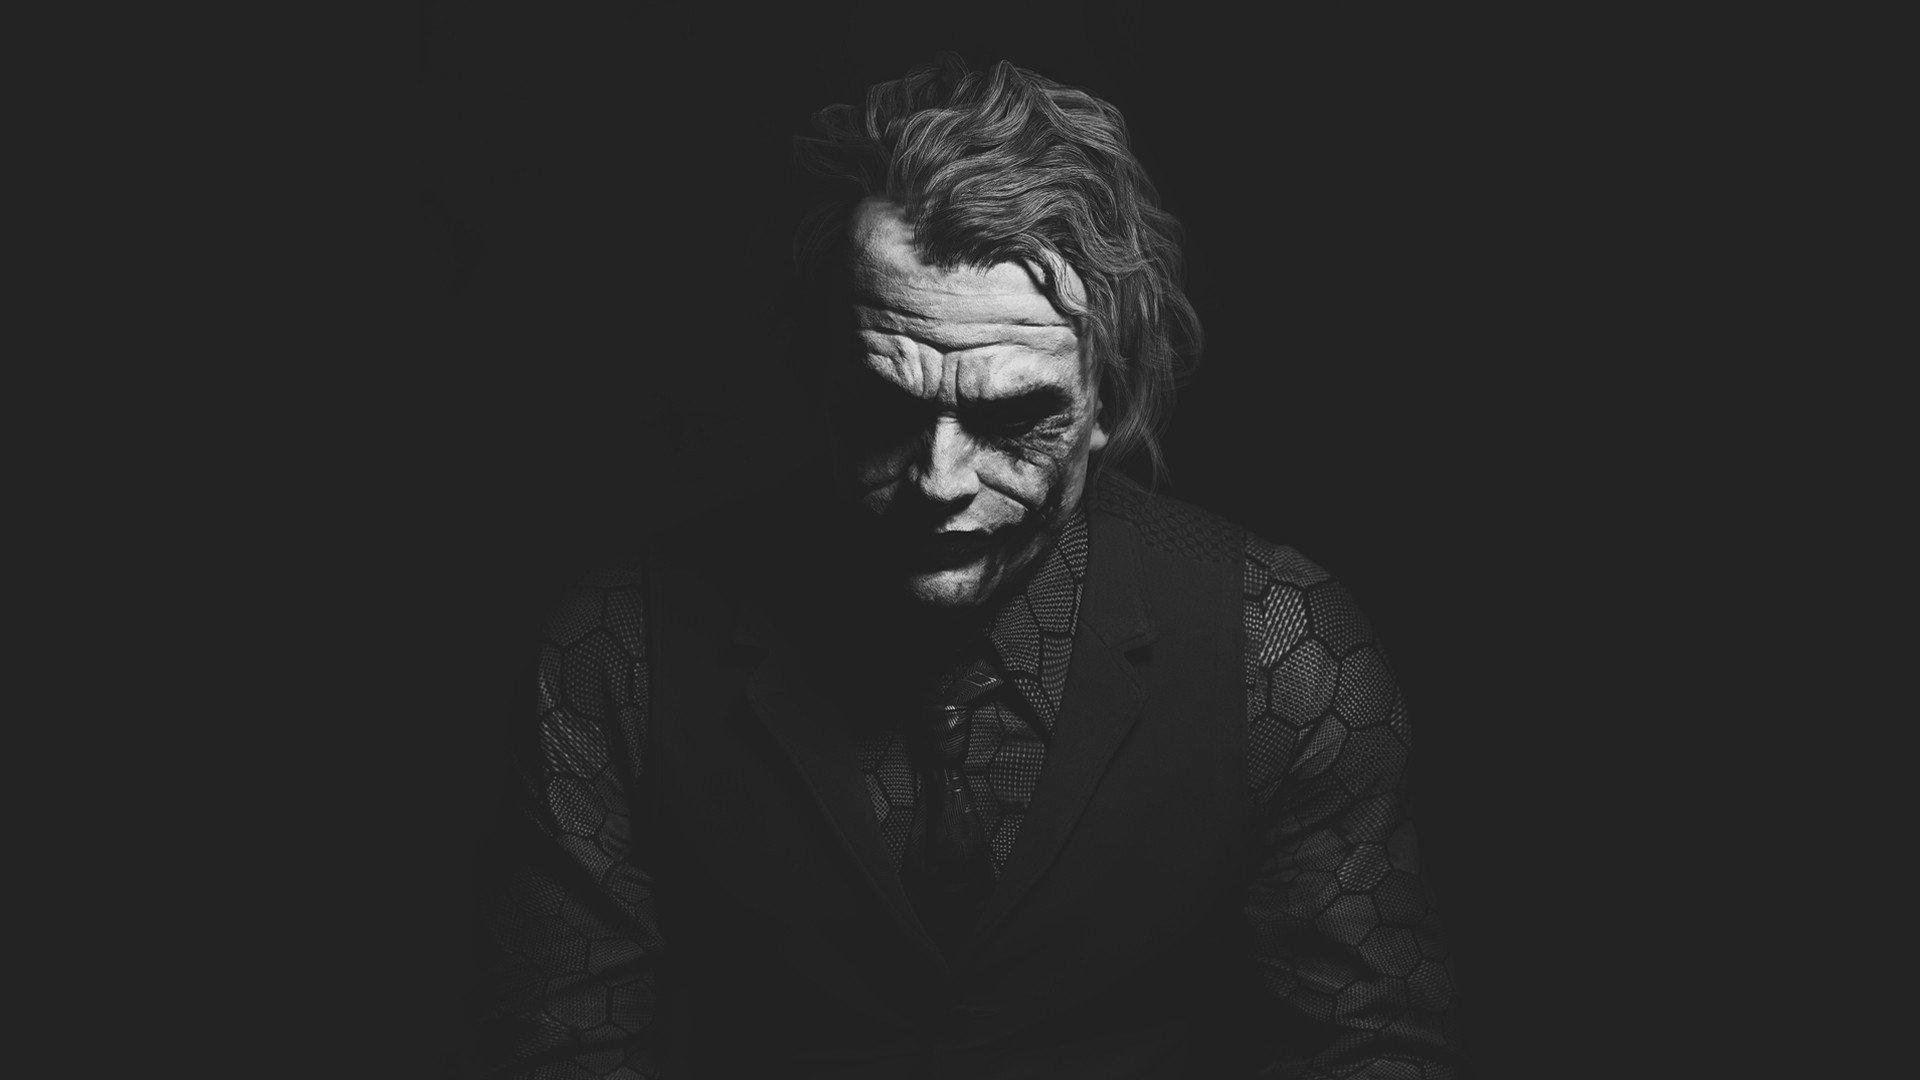 Scary Iphone Wallpapers Top Free Scary Iphone Backgrounds